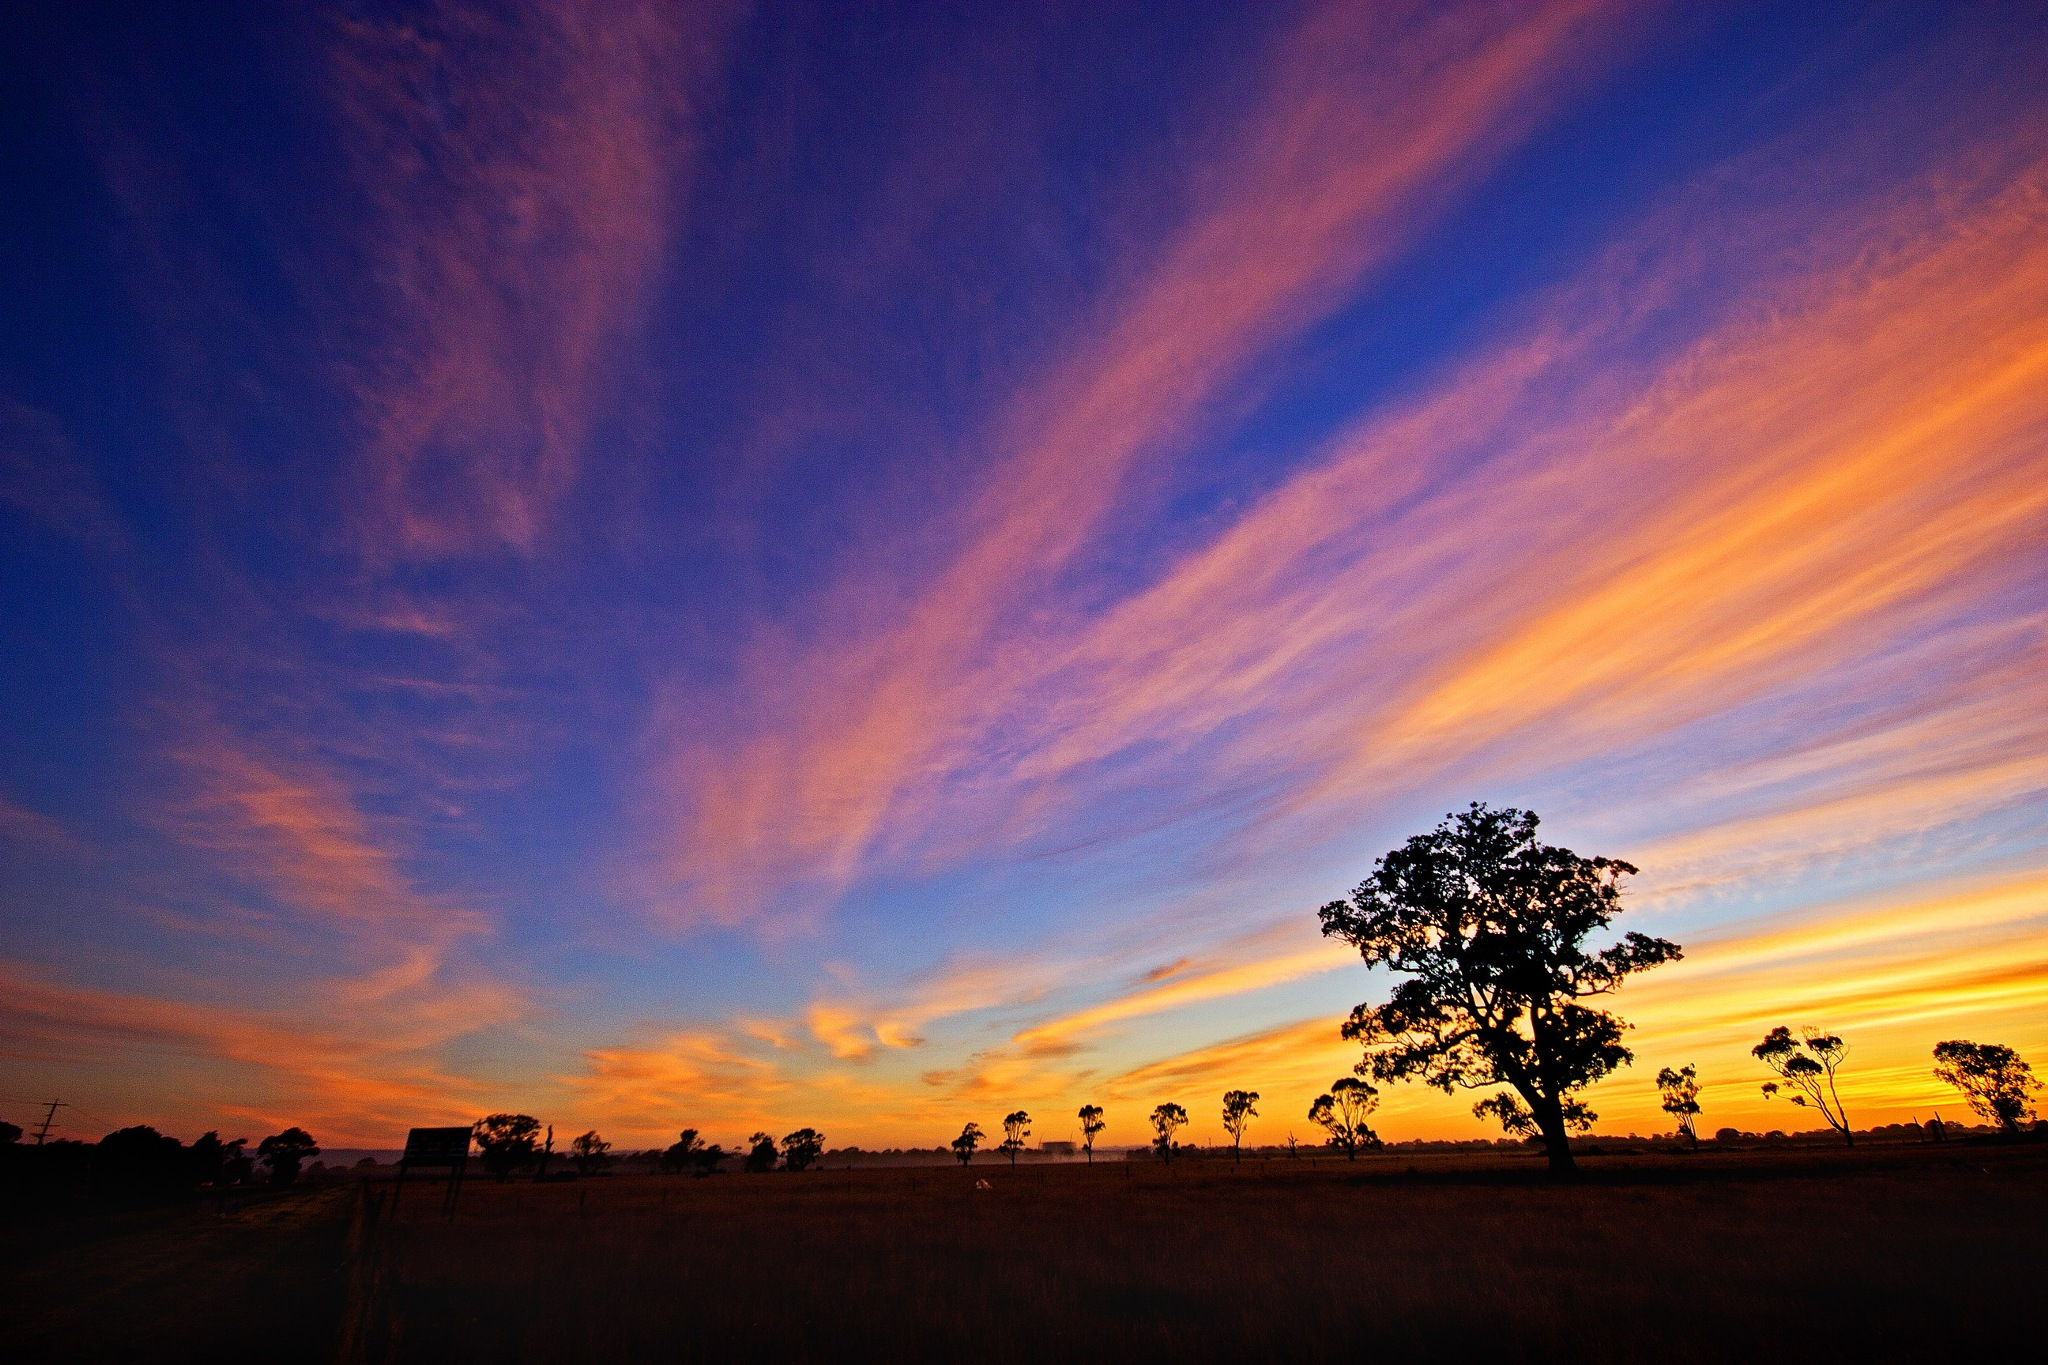 Sunrise Australia by Mark Vivian